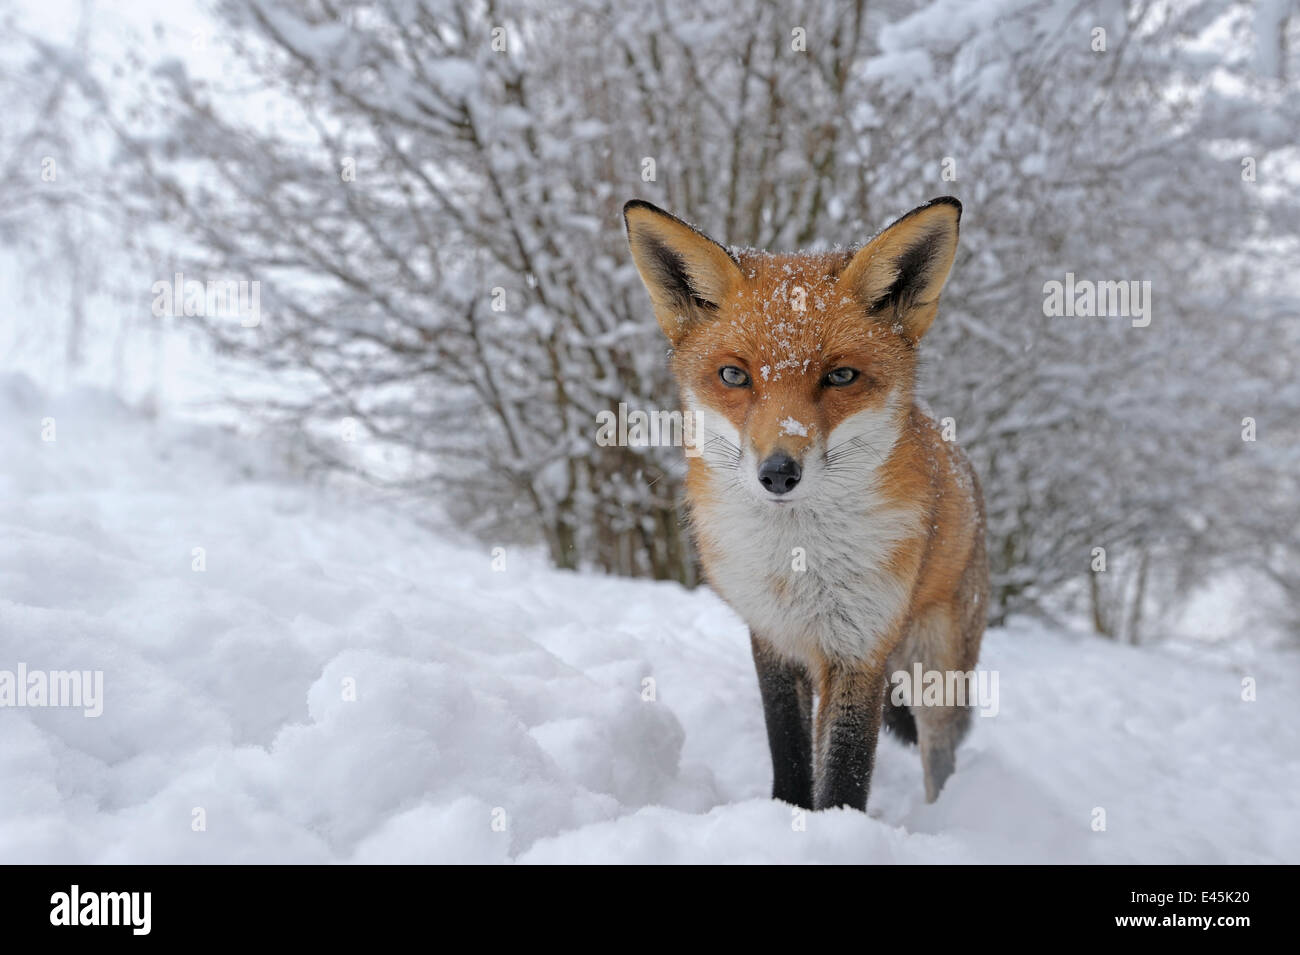 Rosso europeo volpe (Vulpes vulpes) nella neve, UK, captive Immagini Stock